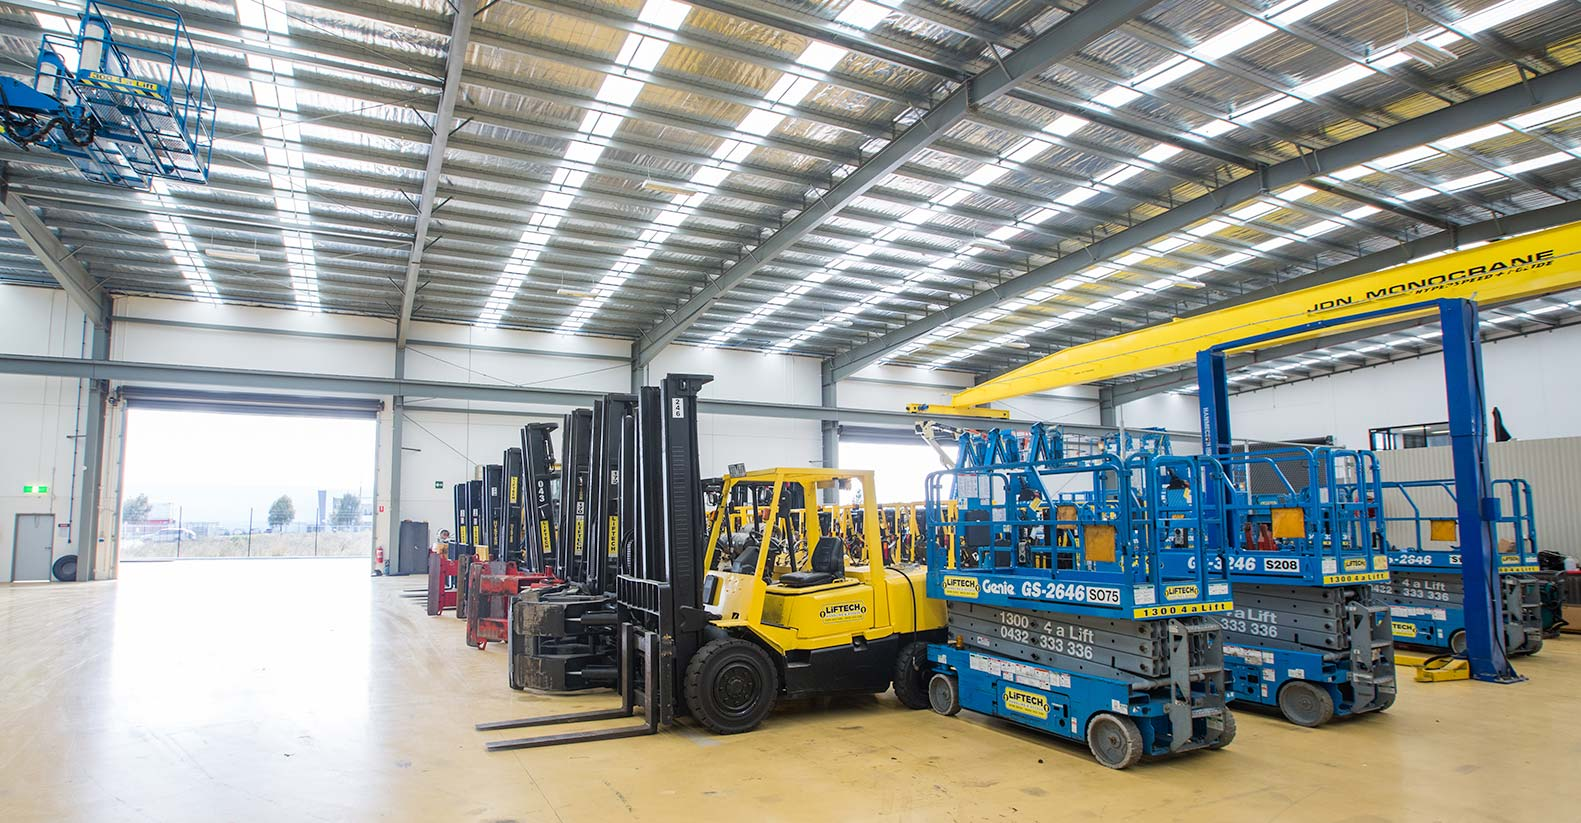 Electric Forklifts Rental Melbourne